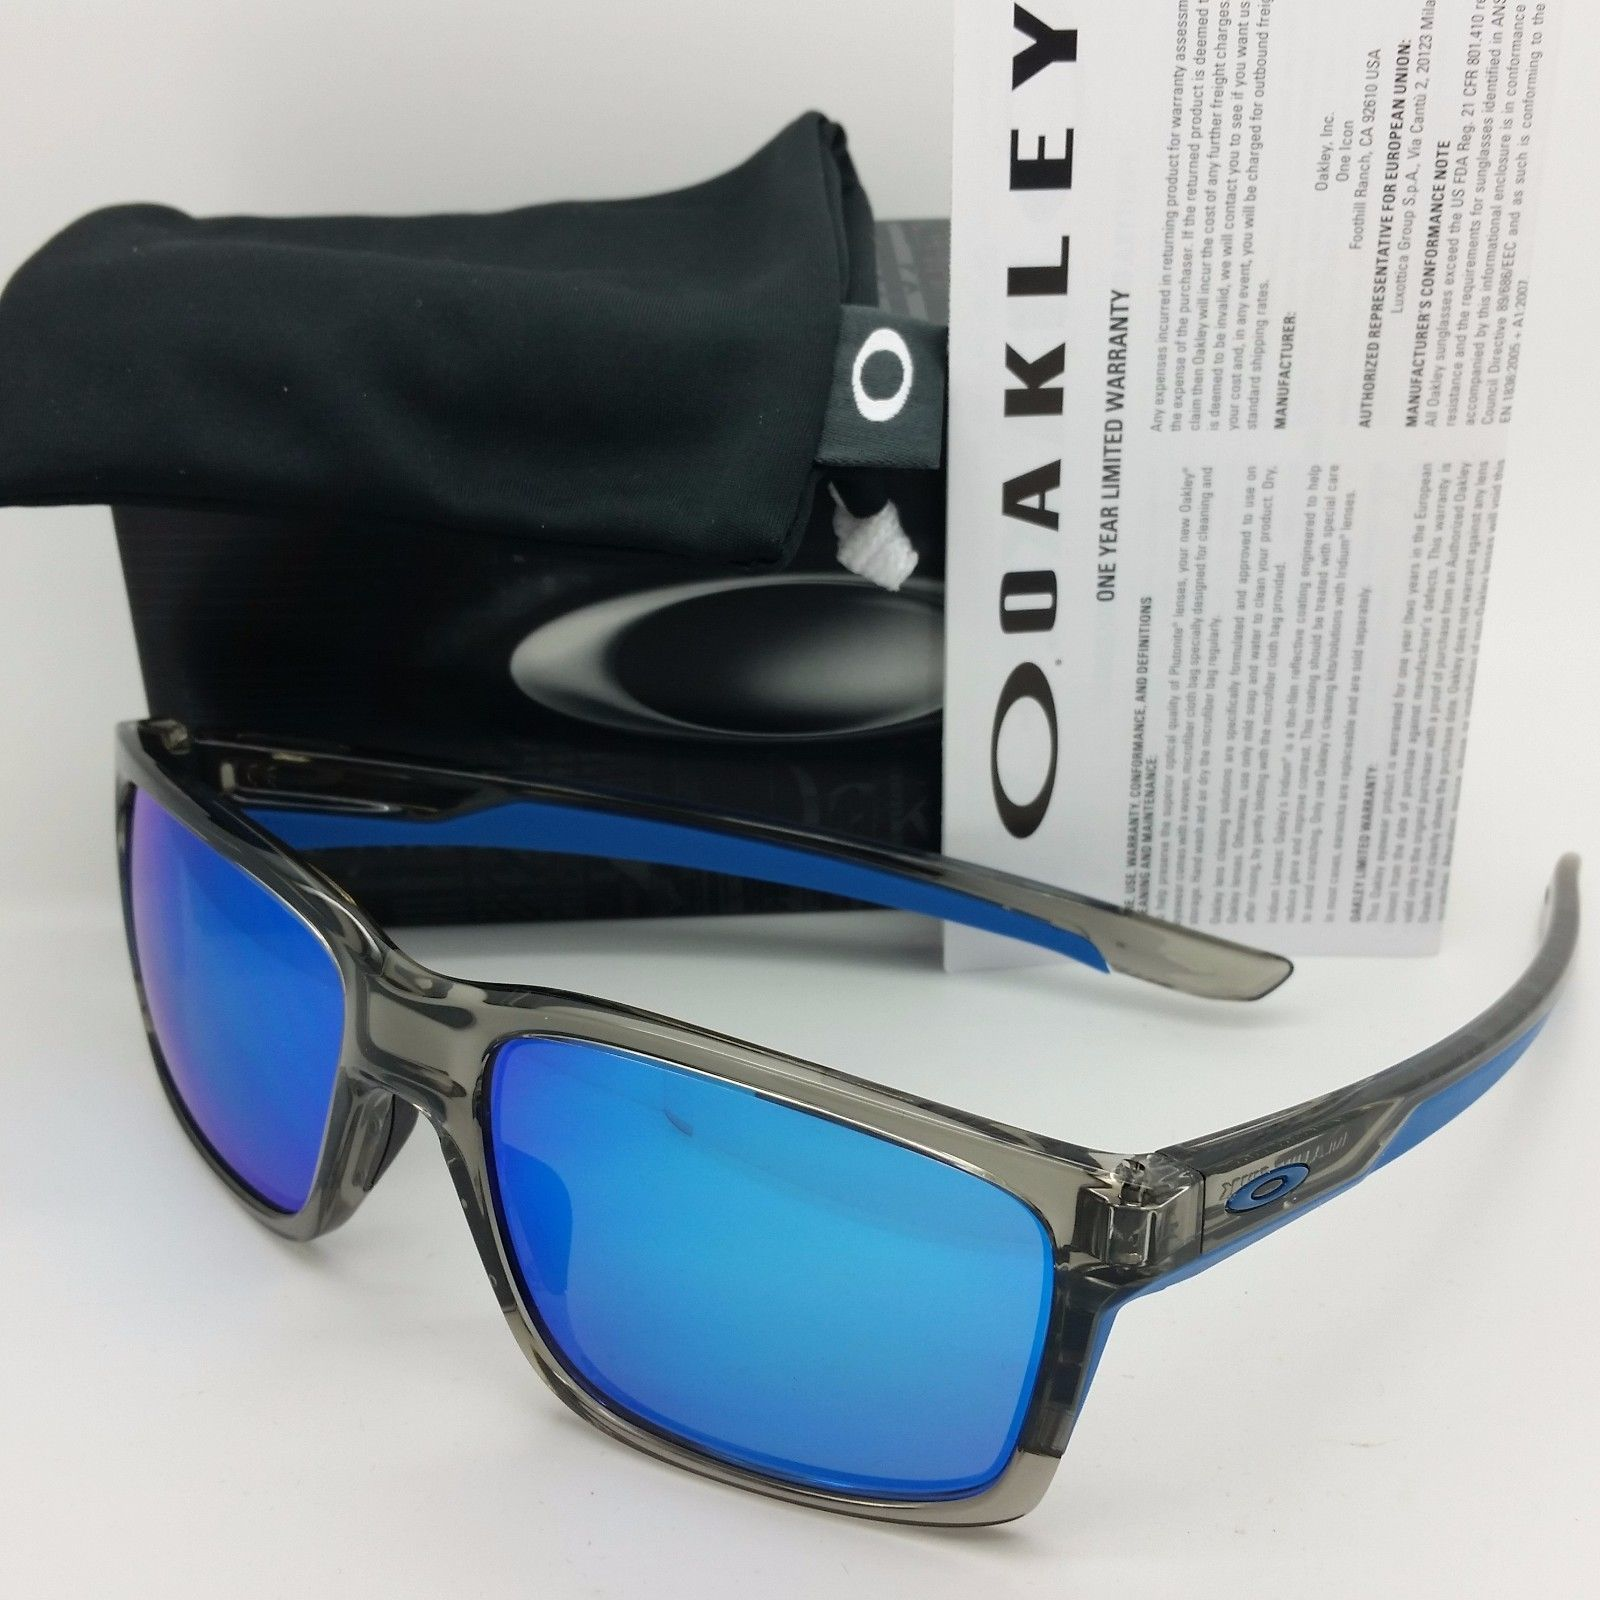 3f83c5f7f26 NEW OAKLEY MAINLINK Sunglasses Grey Ink Sapphire Iridium 9264-03 AUTHENTIC